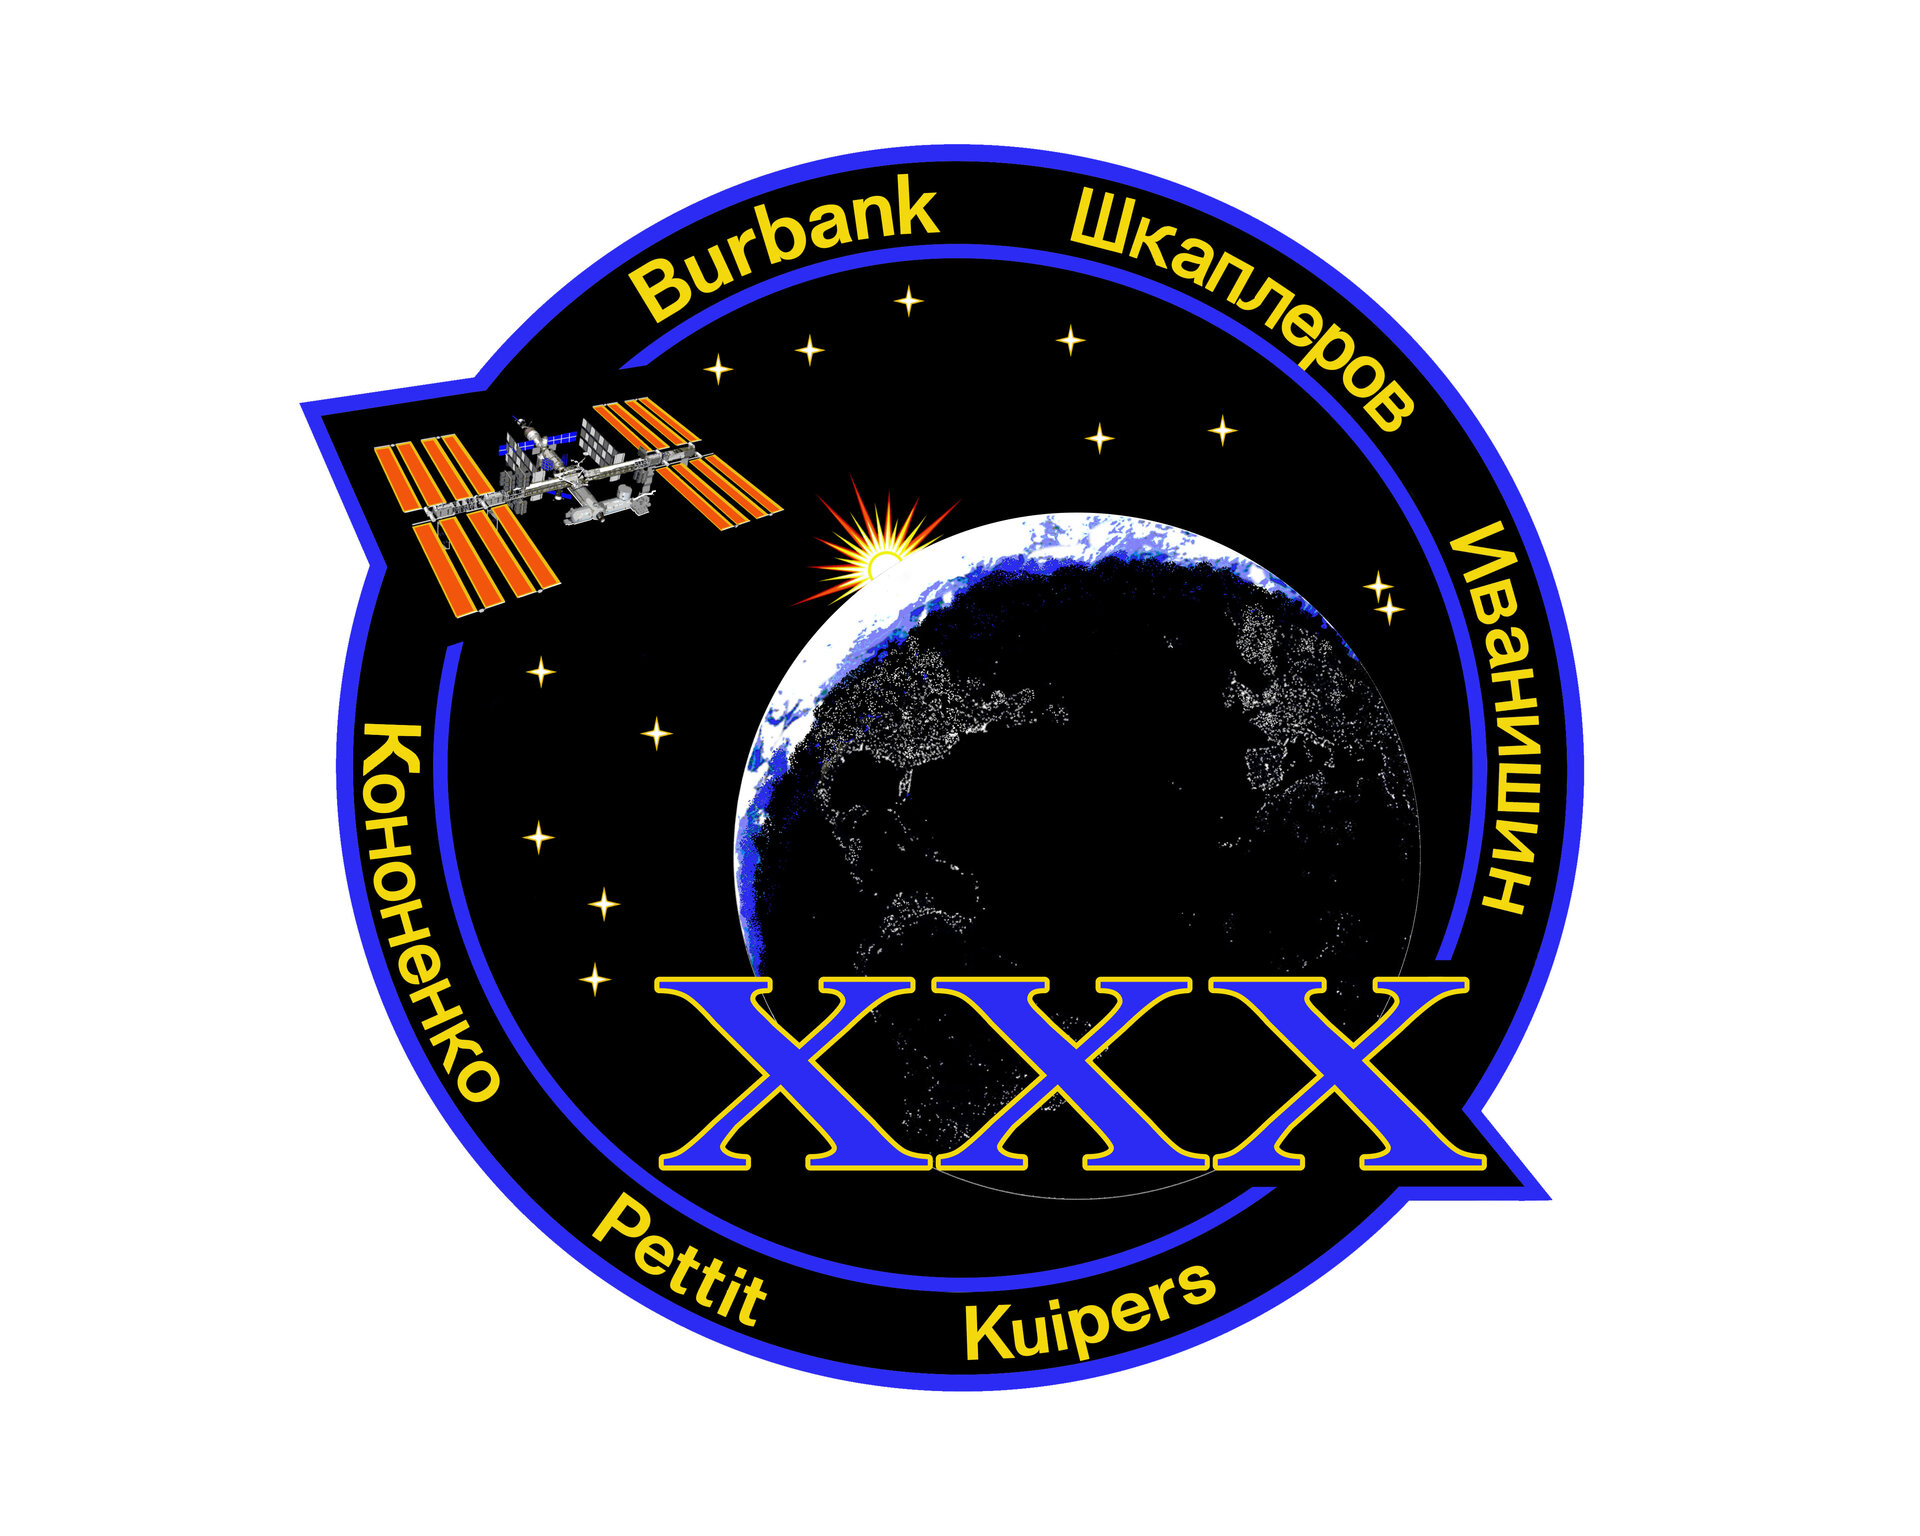 ISS Expedition 30 patch, 2011